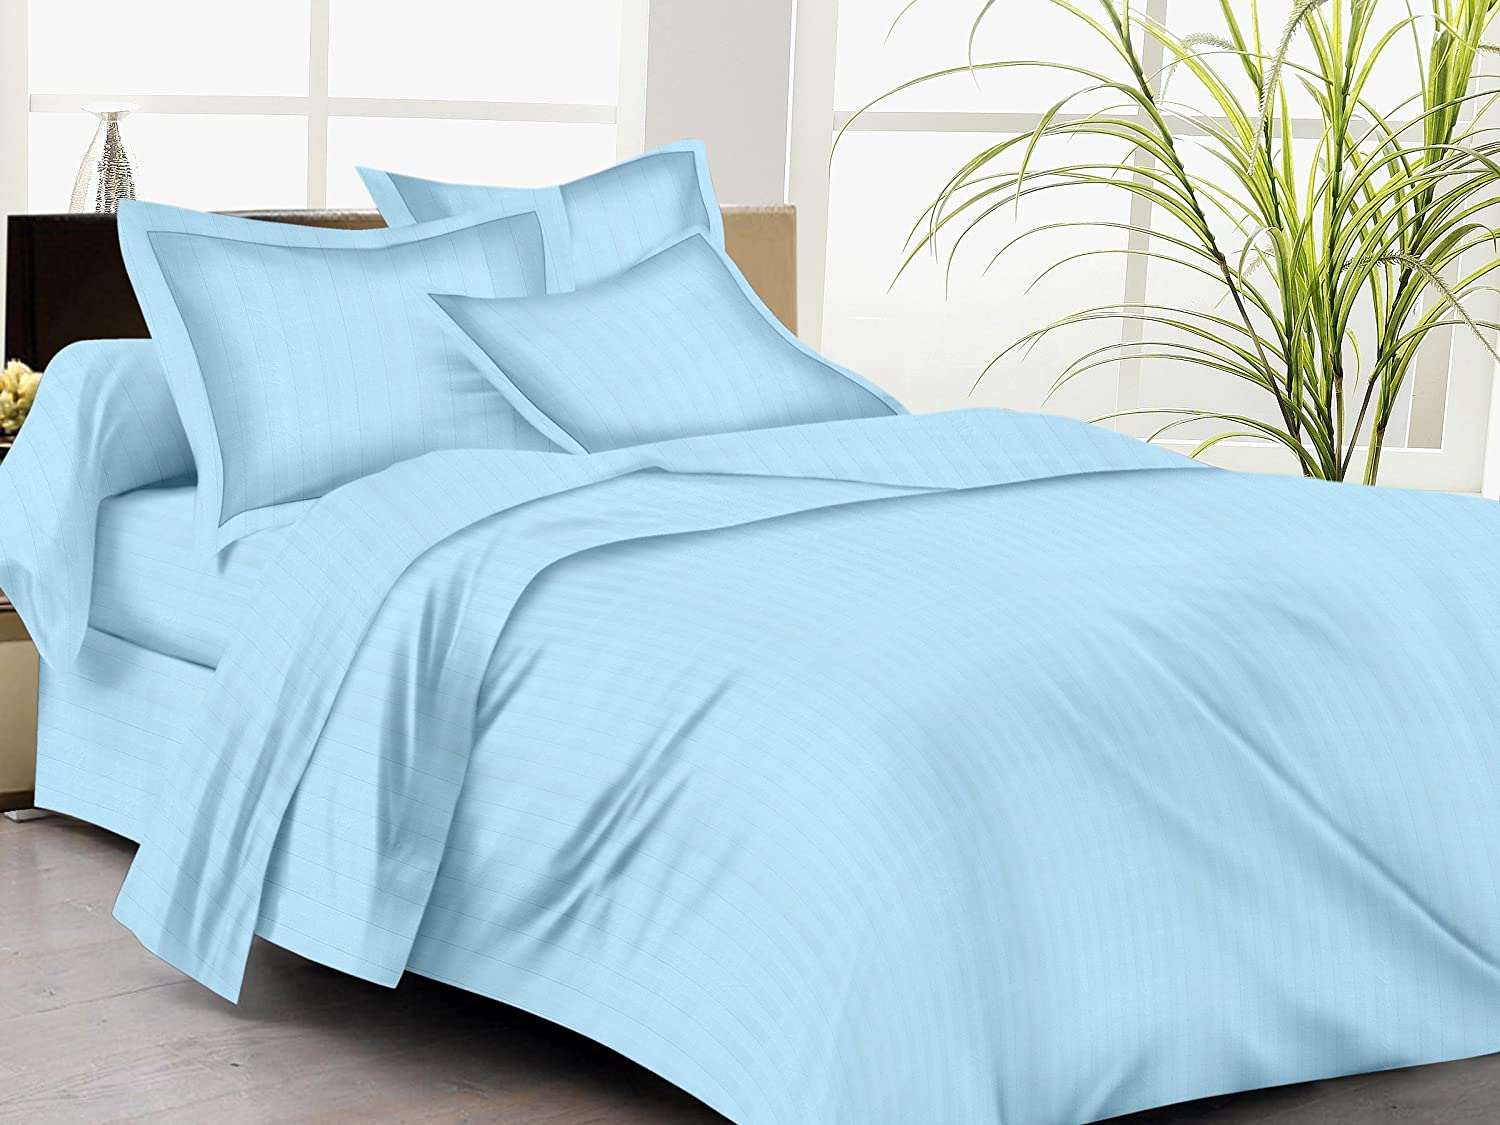 "Trance Home Linen 200 TC Cotton Duvet Cover with 2 Pillow Covers - King Size - 102"" x 110"""